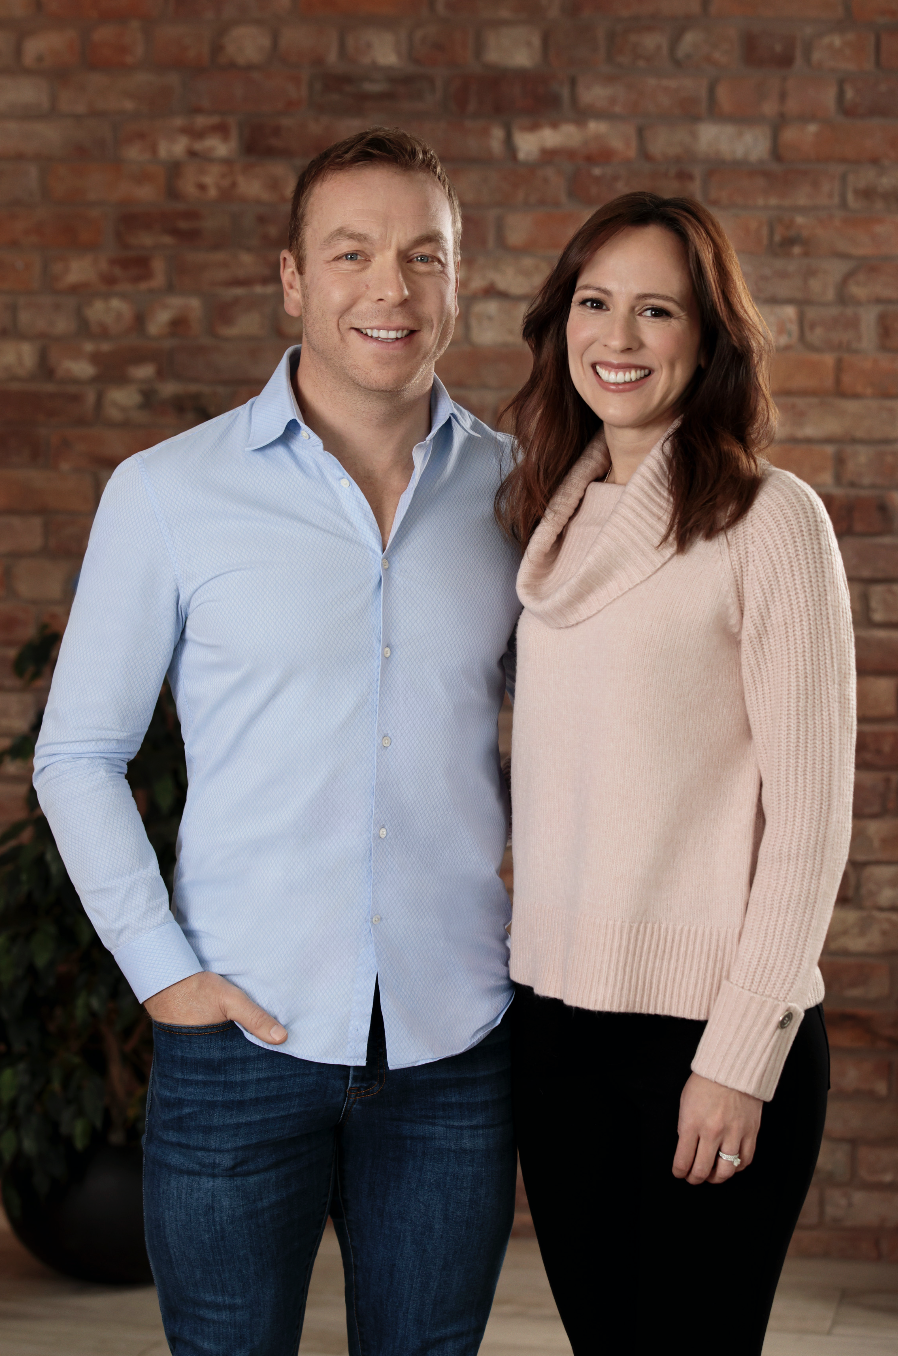 Chris and Sarra are backing the Pampers for Preemies campaign. [Photo: Pampers]